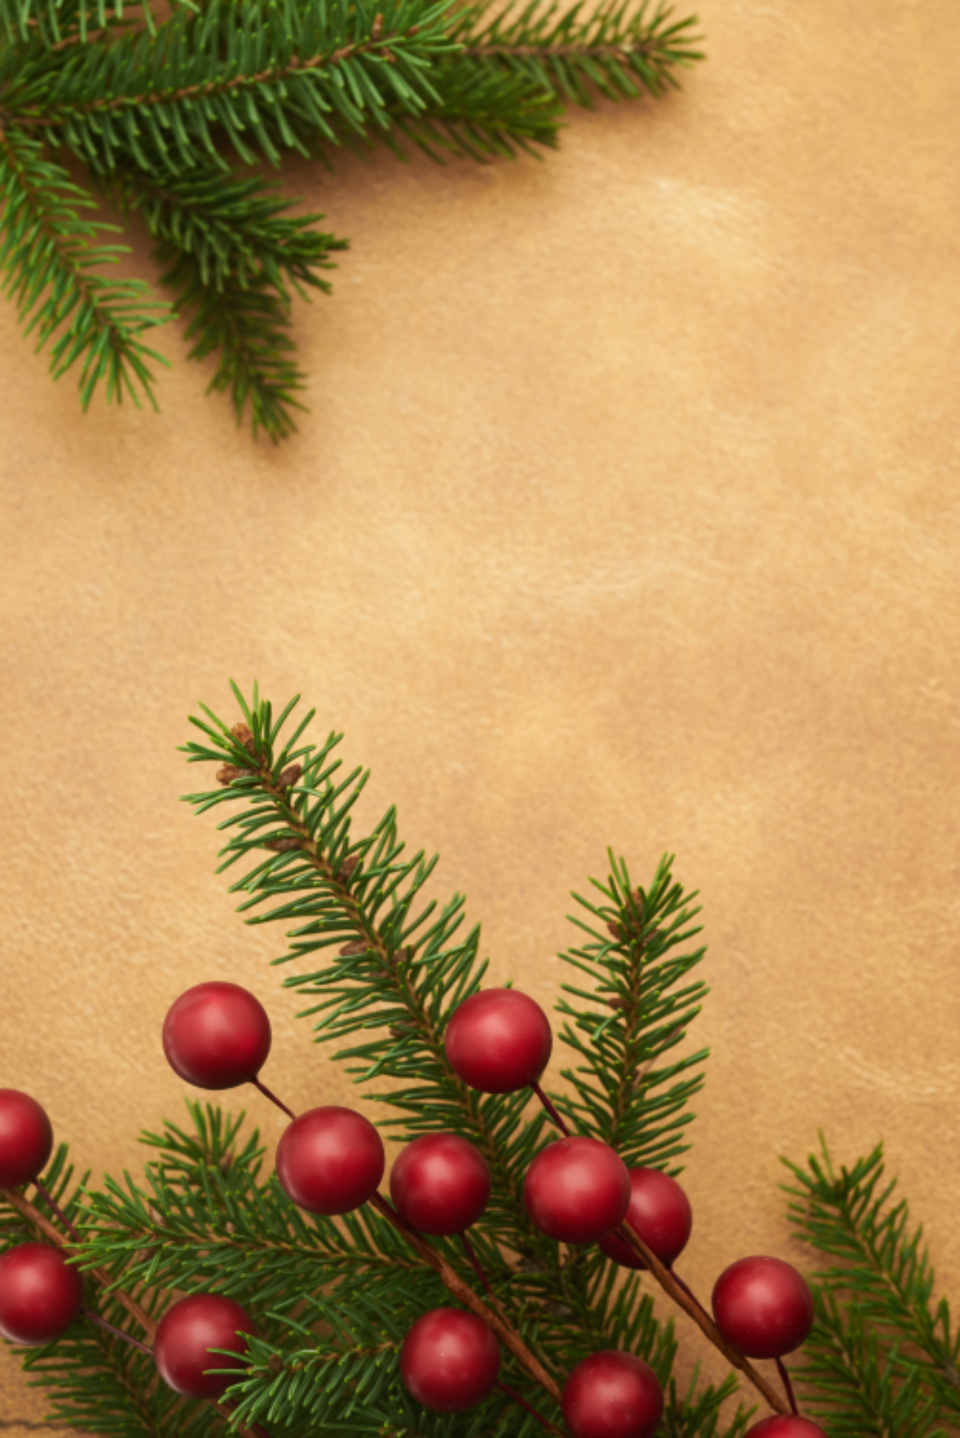 seasonal backgrounds christmas flat lay pine tree branches festive copyspace holiday merry xmas background berries